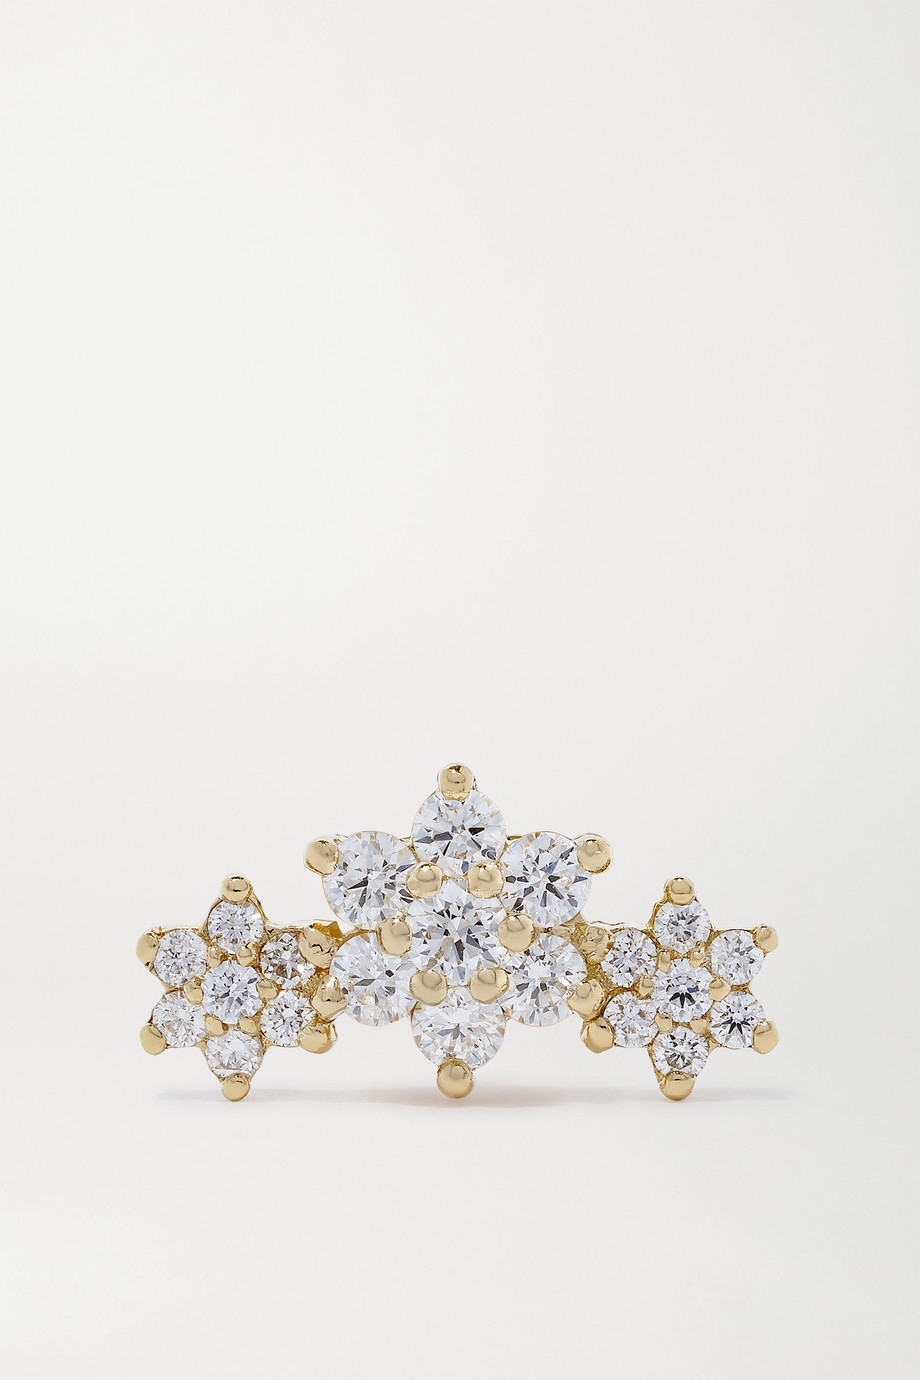 MARIA TASH Boucle d'oreille en or 18 carats et diamants Flower Garland